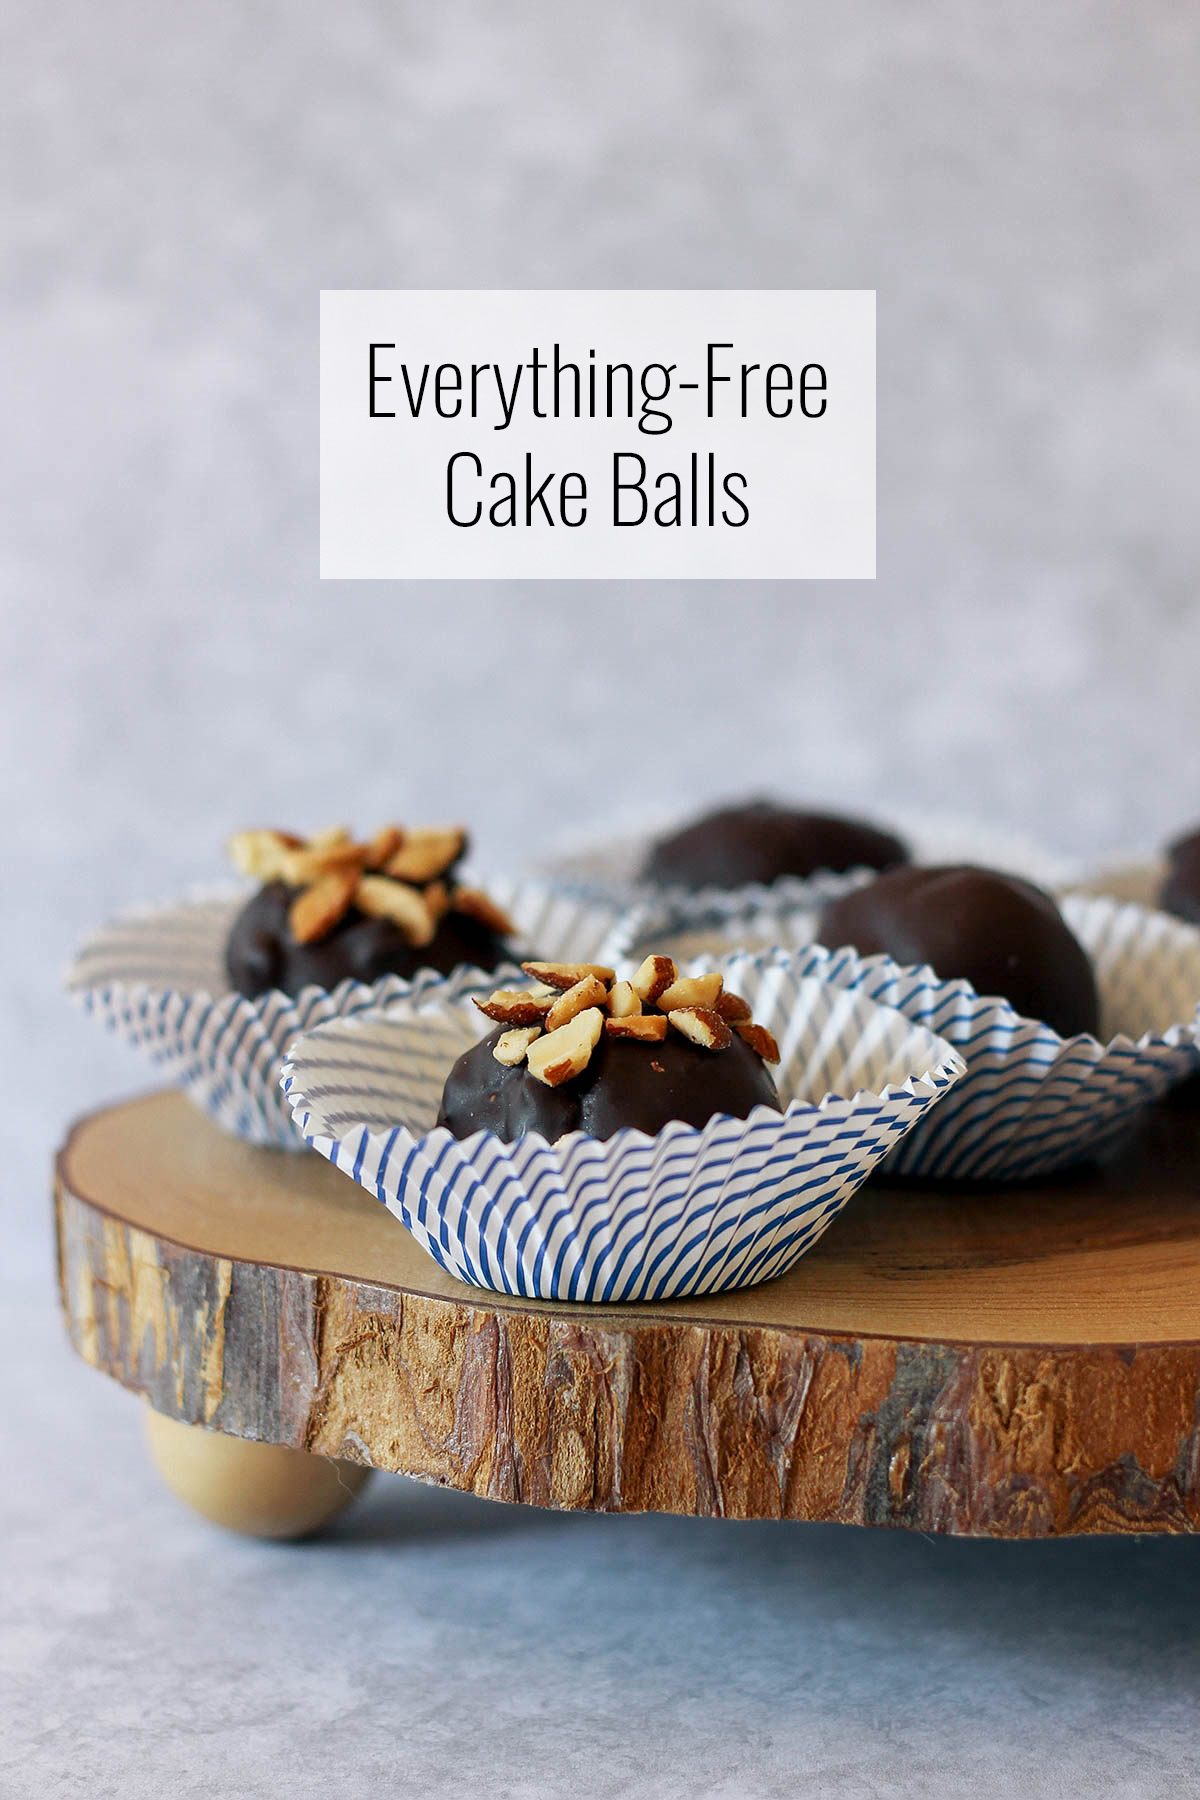 Made without dairy, sugar or gluten, these caramel-stuffed chocolate cake balls are a delicious, healthy treat. Get the full recipe at HomemadeBanana.com #glutenfree #sugarfree #dairyfree #healthy #dessert